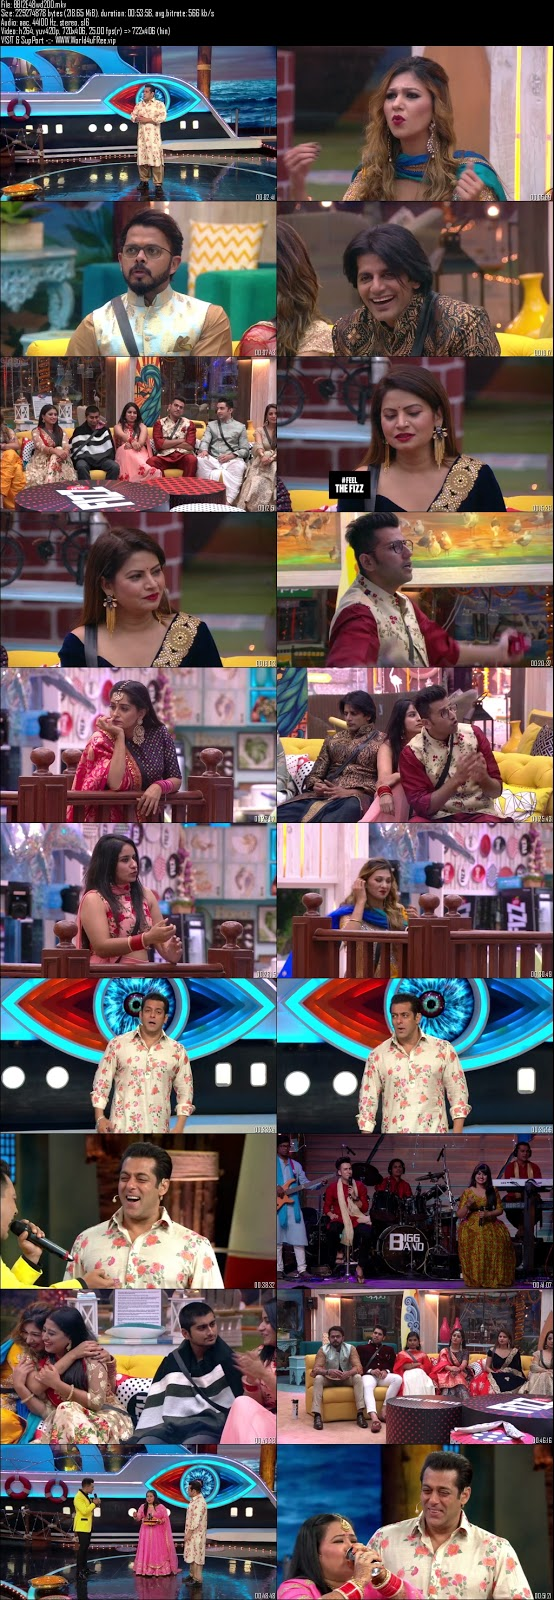 Bigg Boss 12 Episode 48 03 November 2018 WEBRip 480p 200Mb x264 world4ufree.fun tv show Episode 48 03 November 2018 world4ufree.fun 200mb 250mb 300mb compressed small size free download or watch online at world4ufree.fun